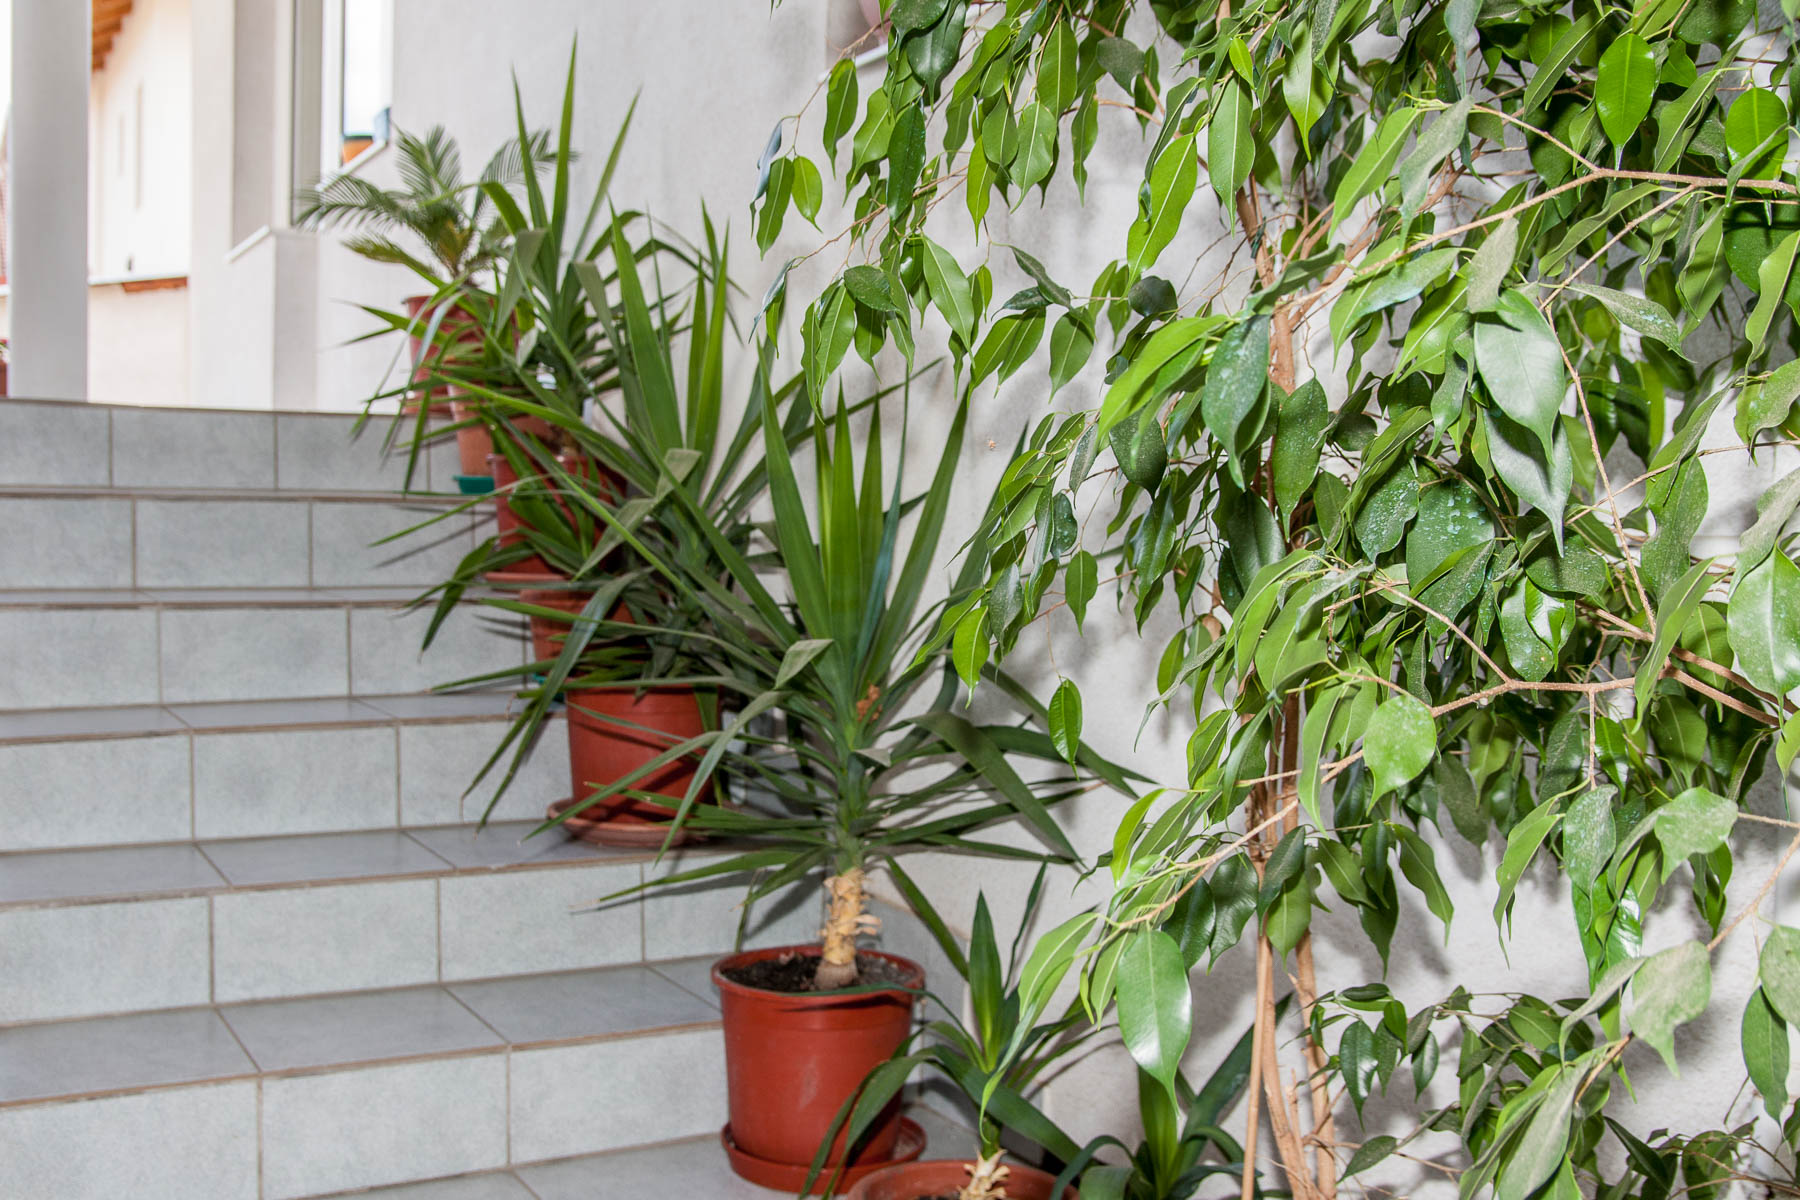 Stairs with plants